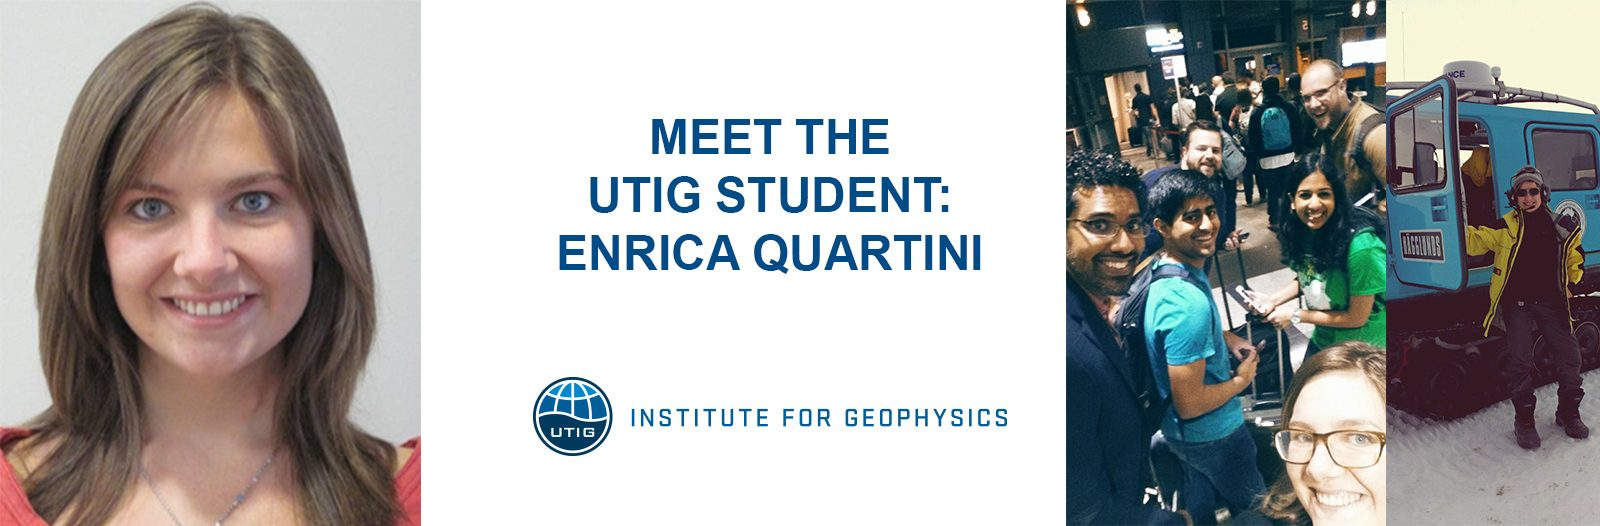 Student Profile: Enrica Quartini